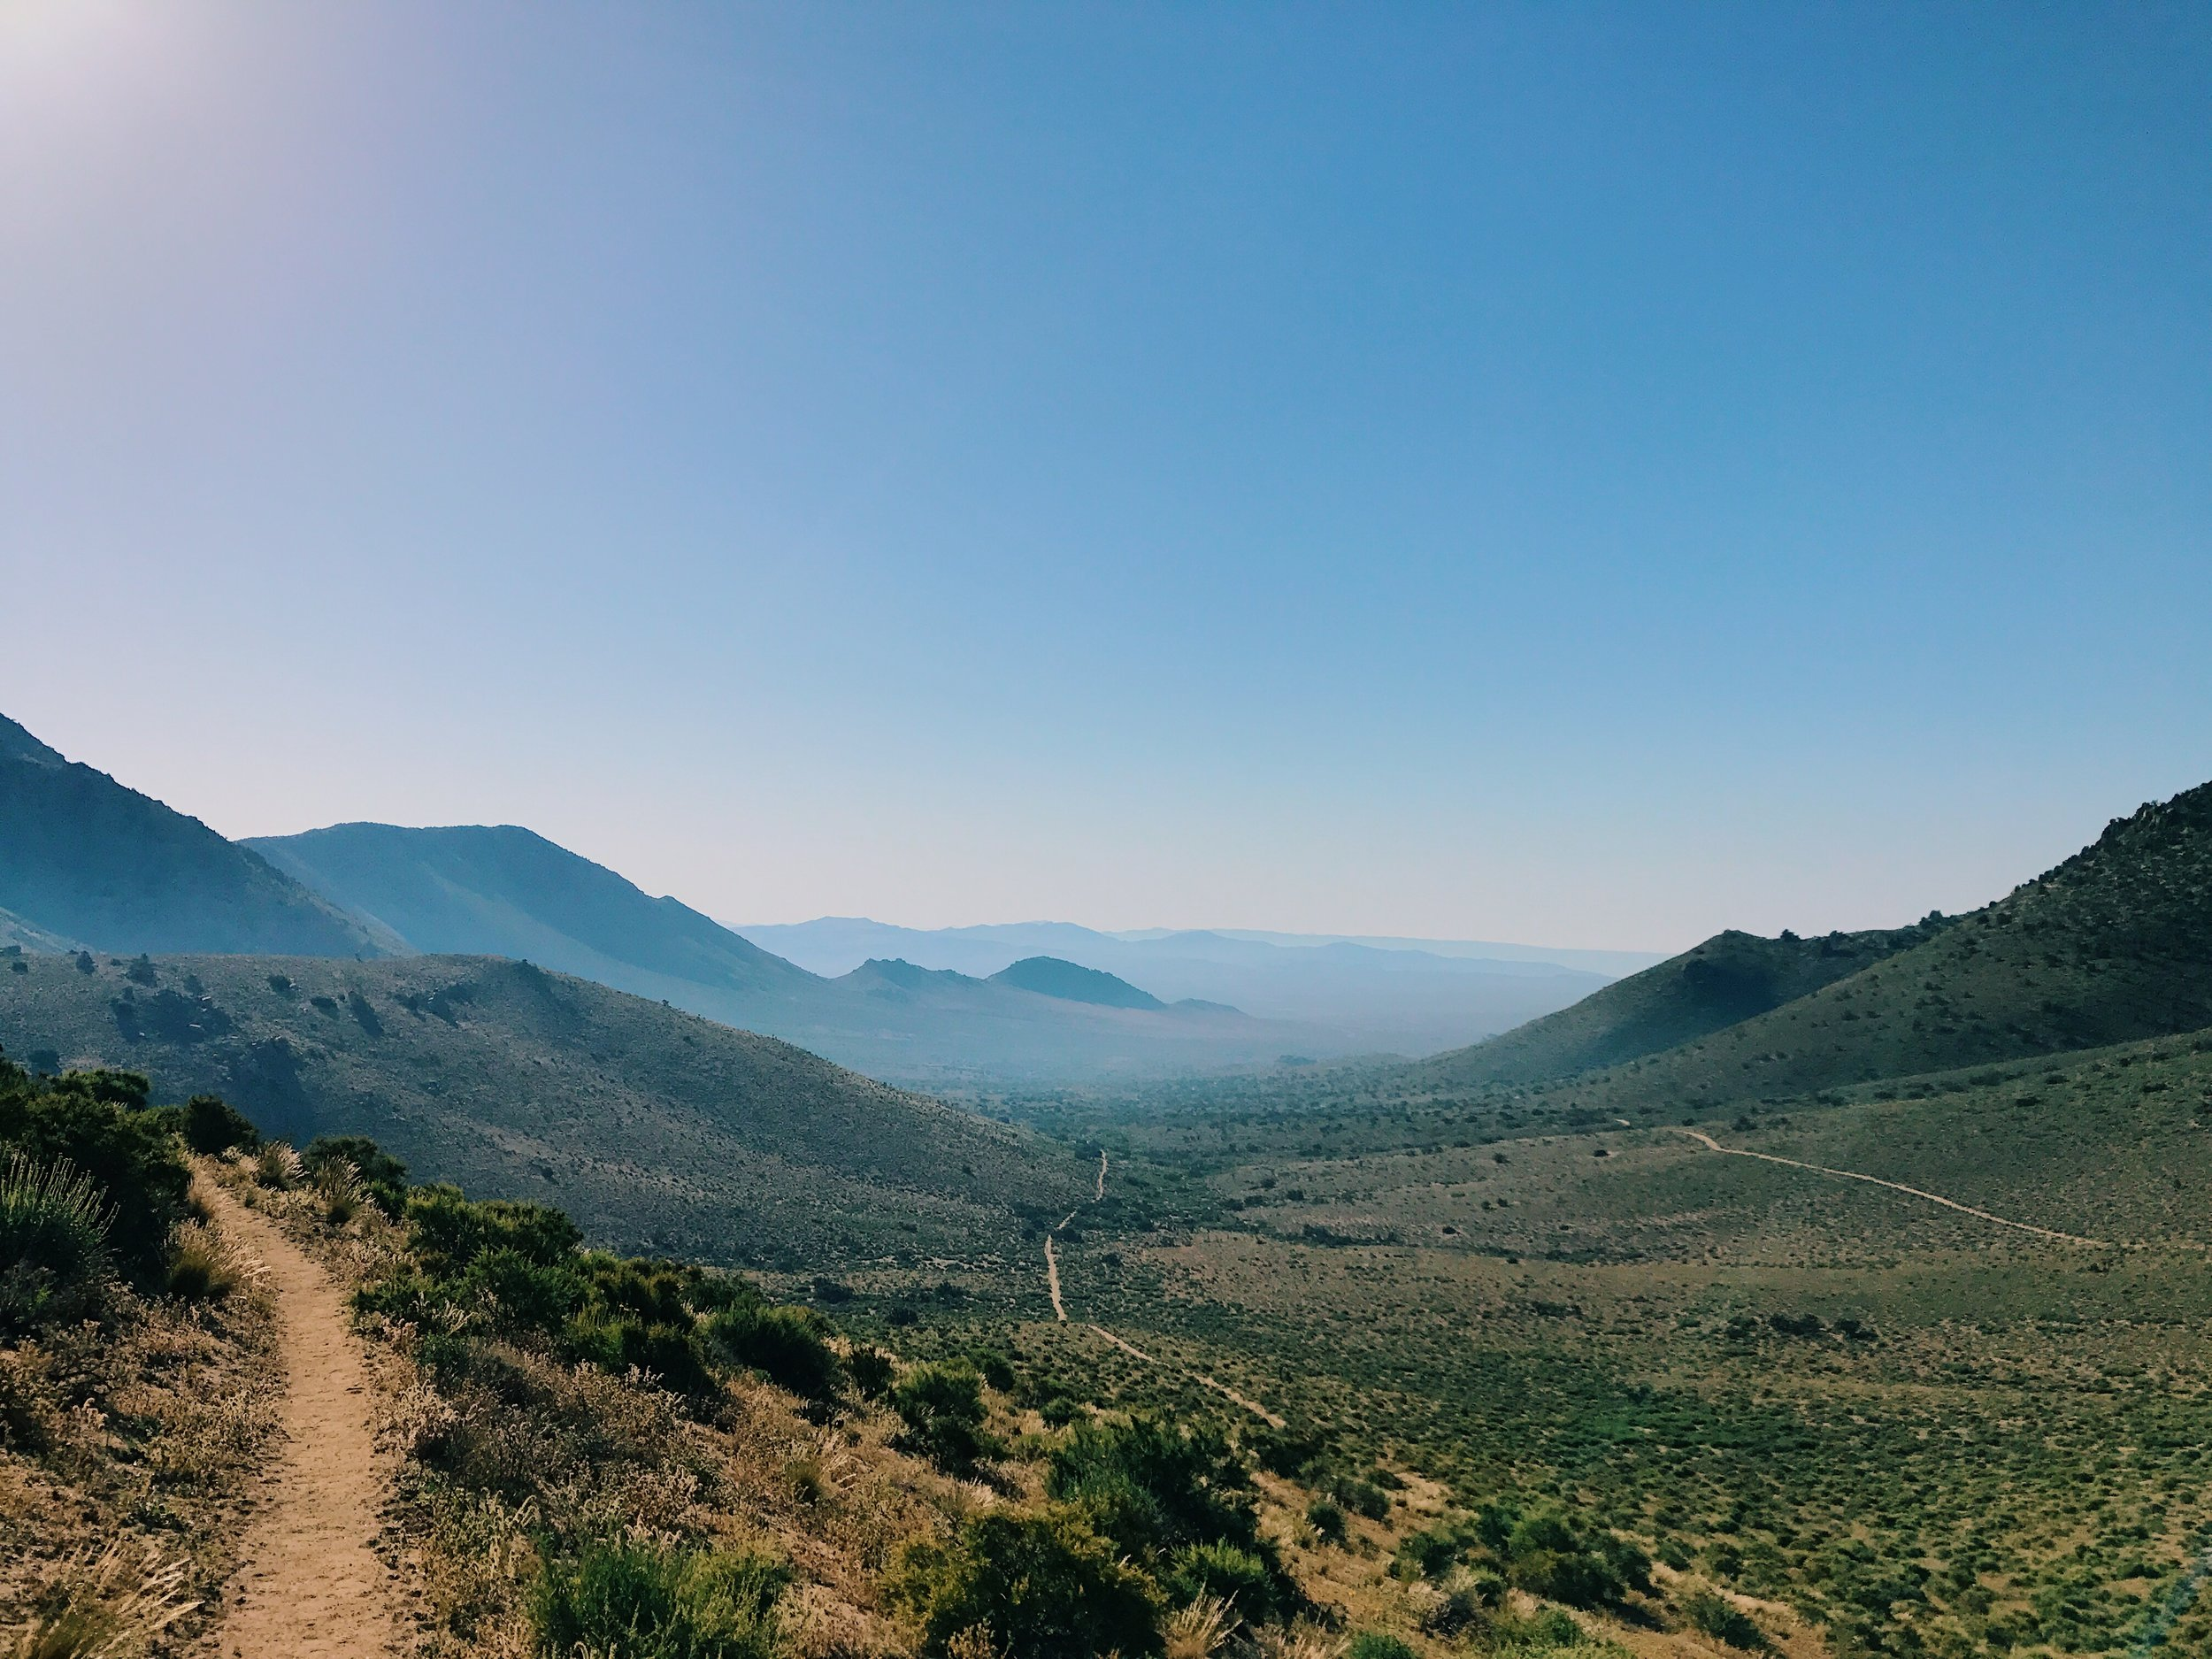 the trail wraps around hillsides and mountain tops. All painful climbing but the visuals provide rewards.